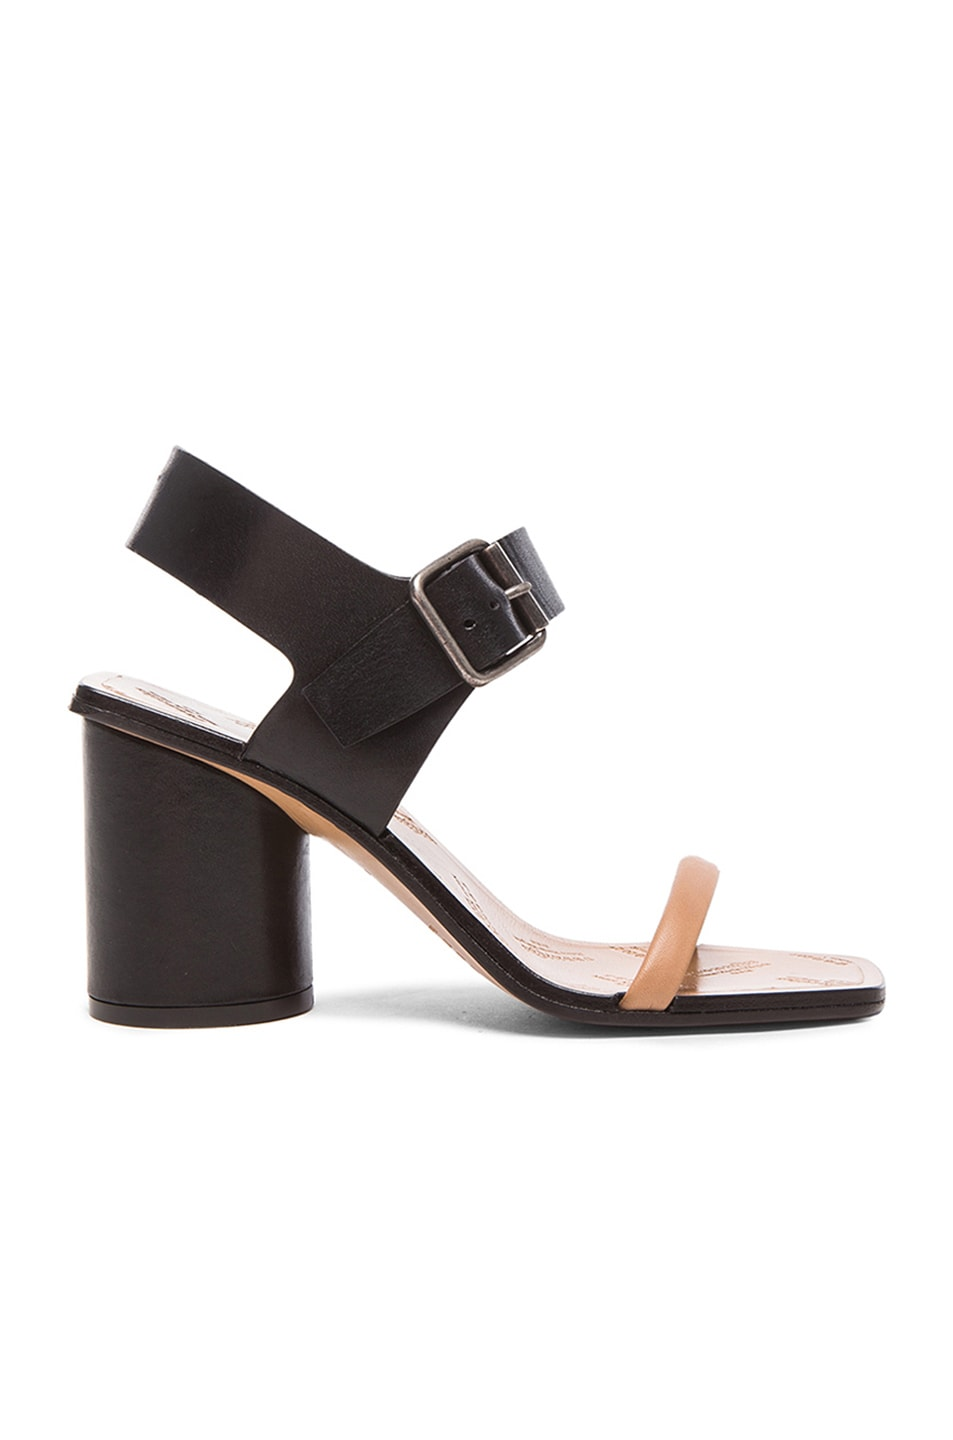 Image 1 of Maison Margiela Strap Leather Sandals in Black & Flesh